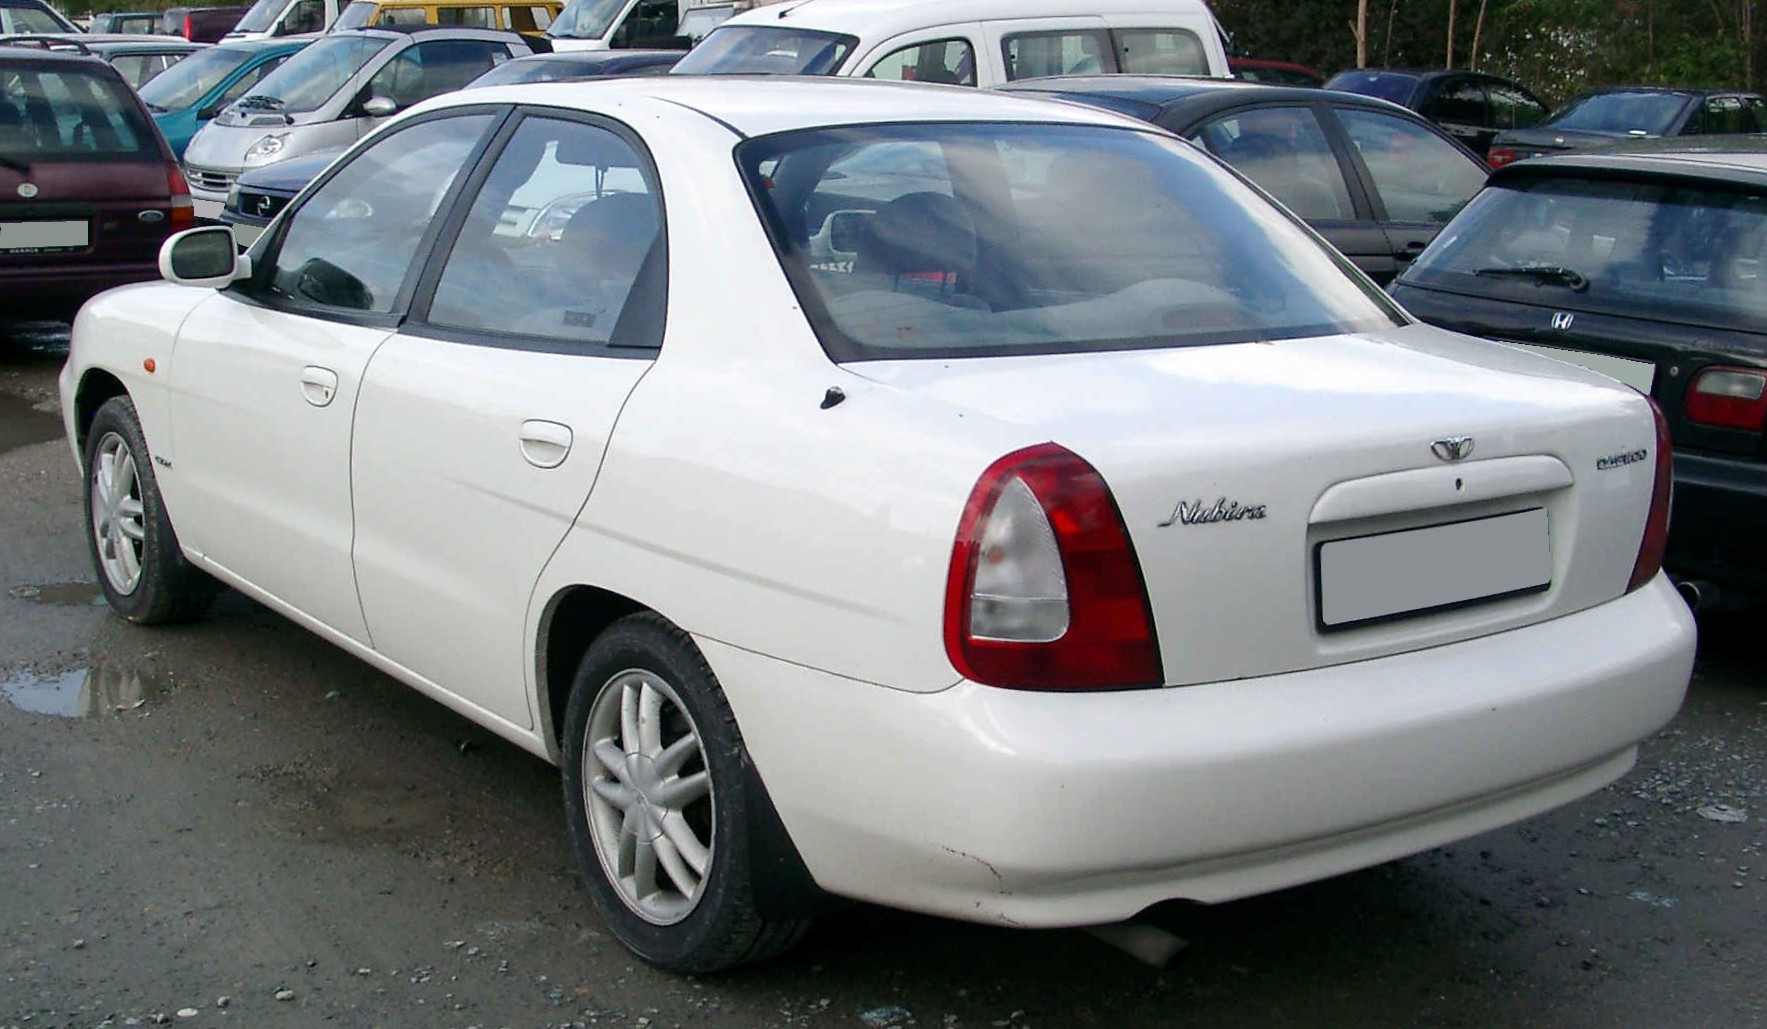 2002 Daewoo Evanda   pictures, information and specs - Auto